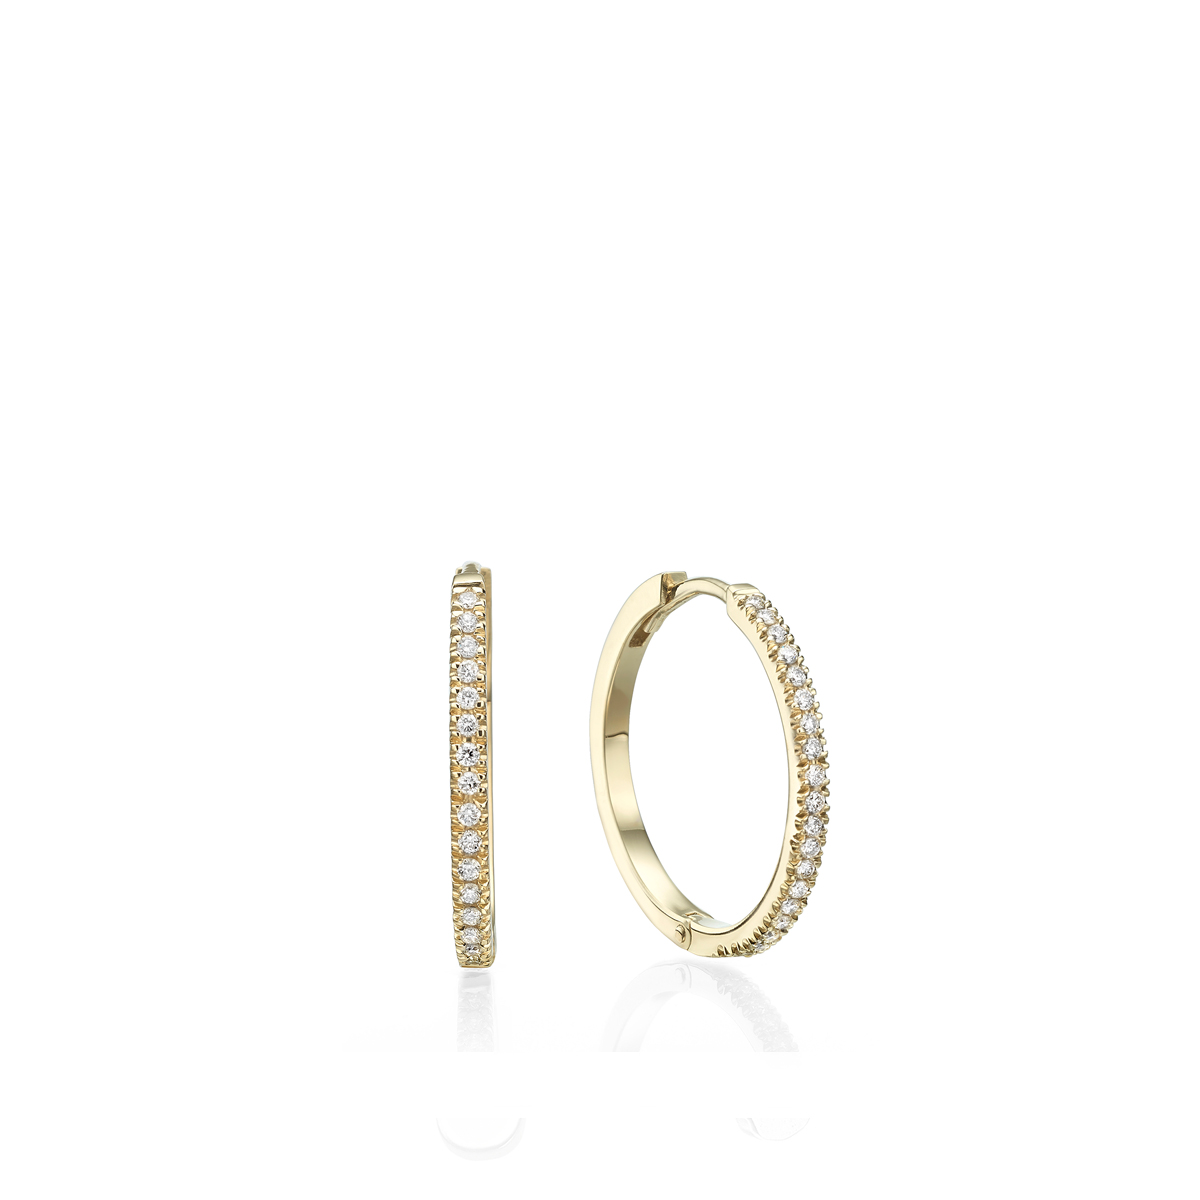 20mm Gold Diamond Hoops